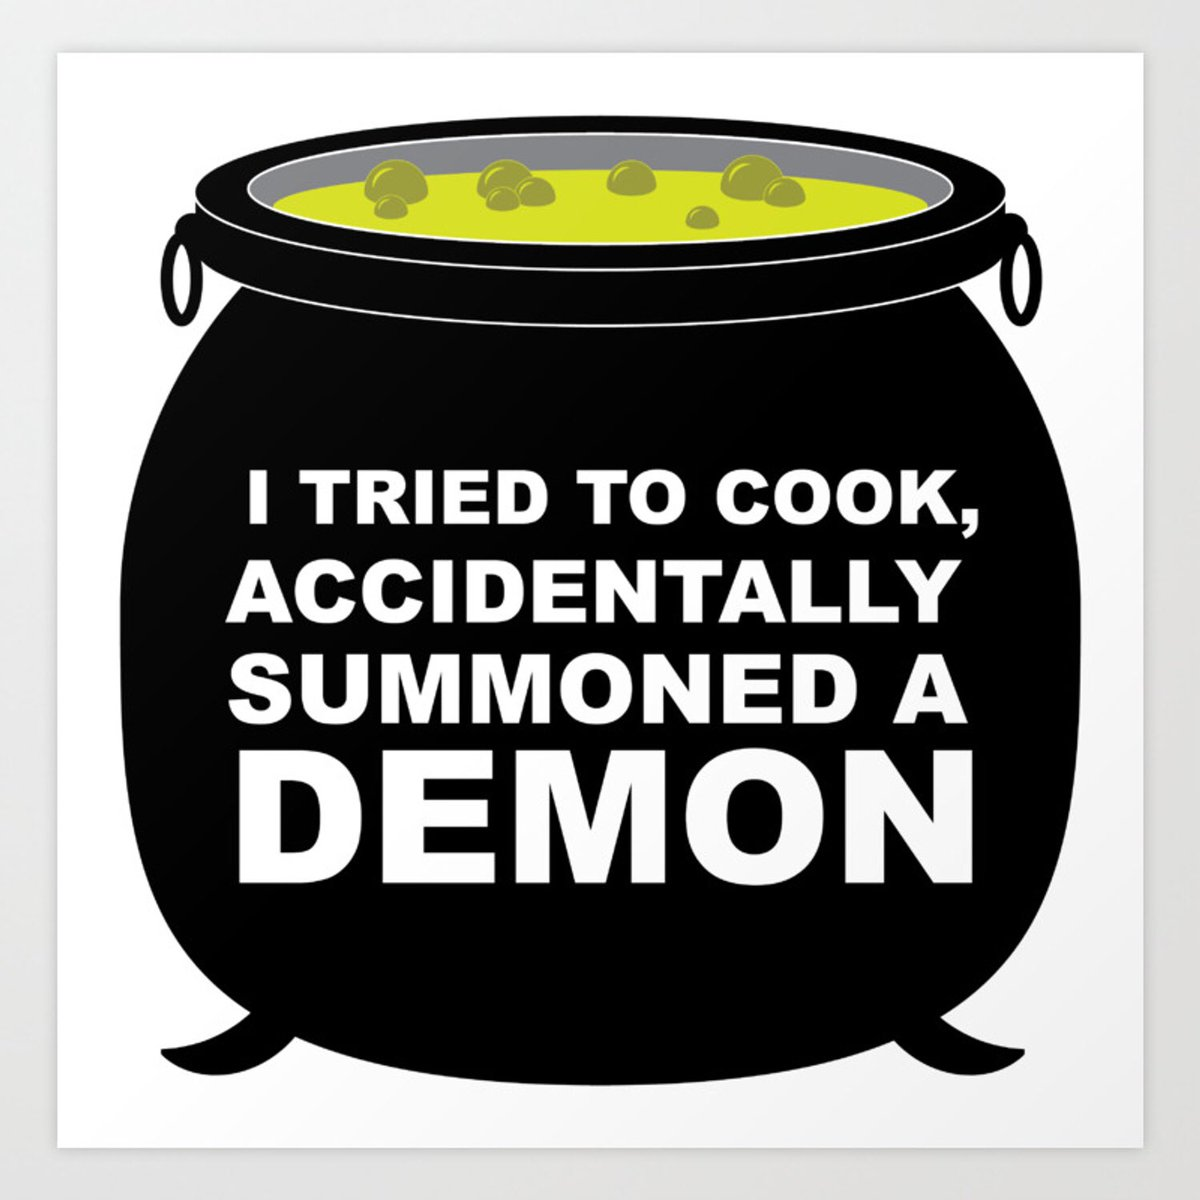 And this is why I stick to desserts . . . #cantcook pic.twitter.com/Bp3uo5ovE6